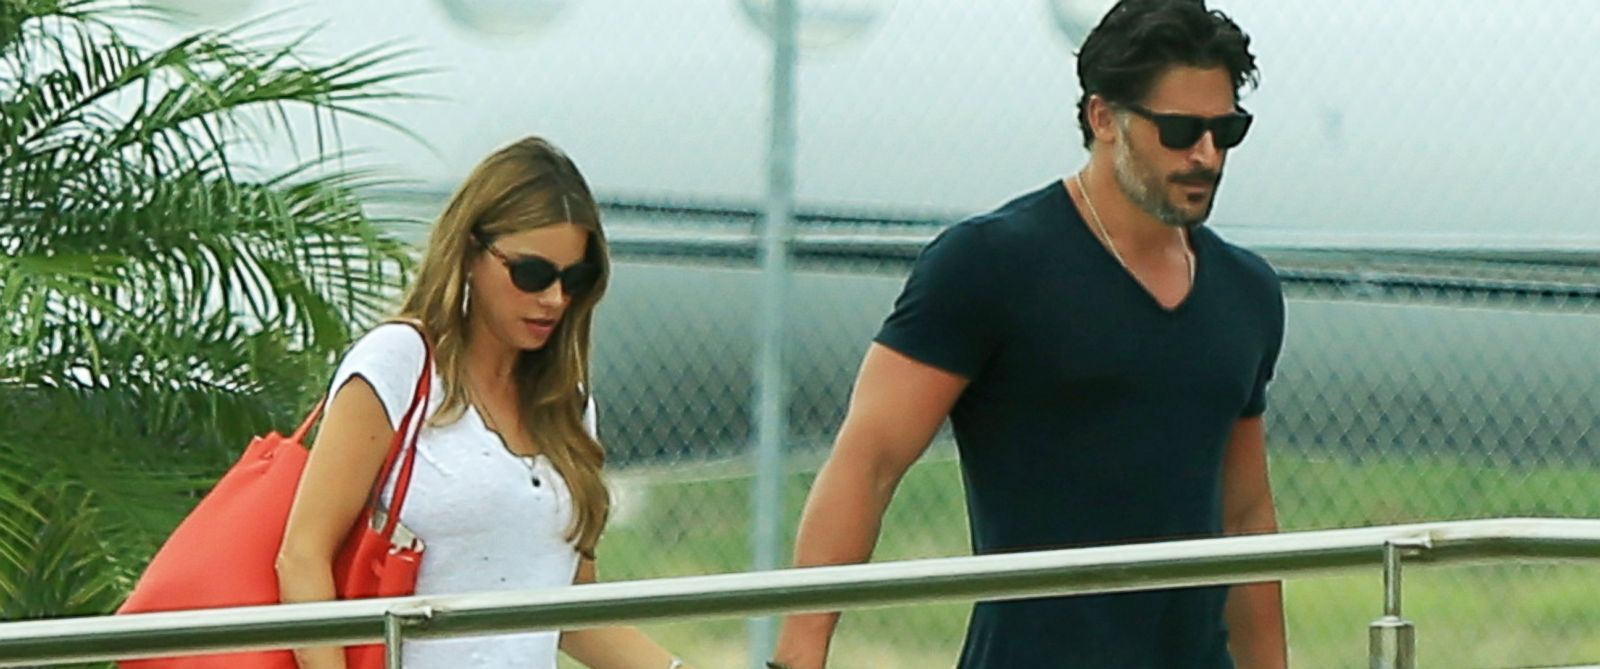 PHOTO: Sofia Vergara and boyfriend Joe Manganiello are spotted catching a flight out of Cabo San Lucas, Mexico after enjoying a romantic vacation together, Sept. 1, 2014.